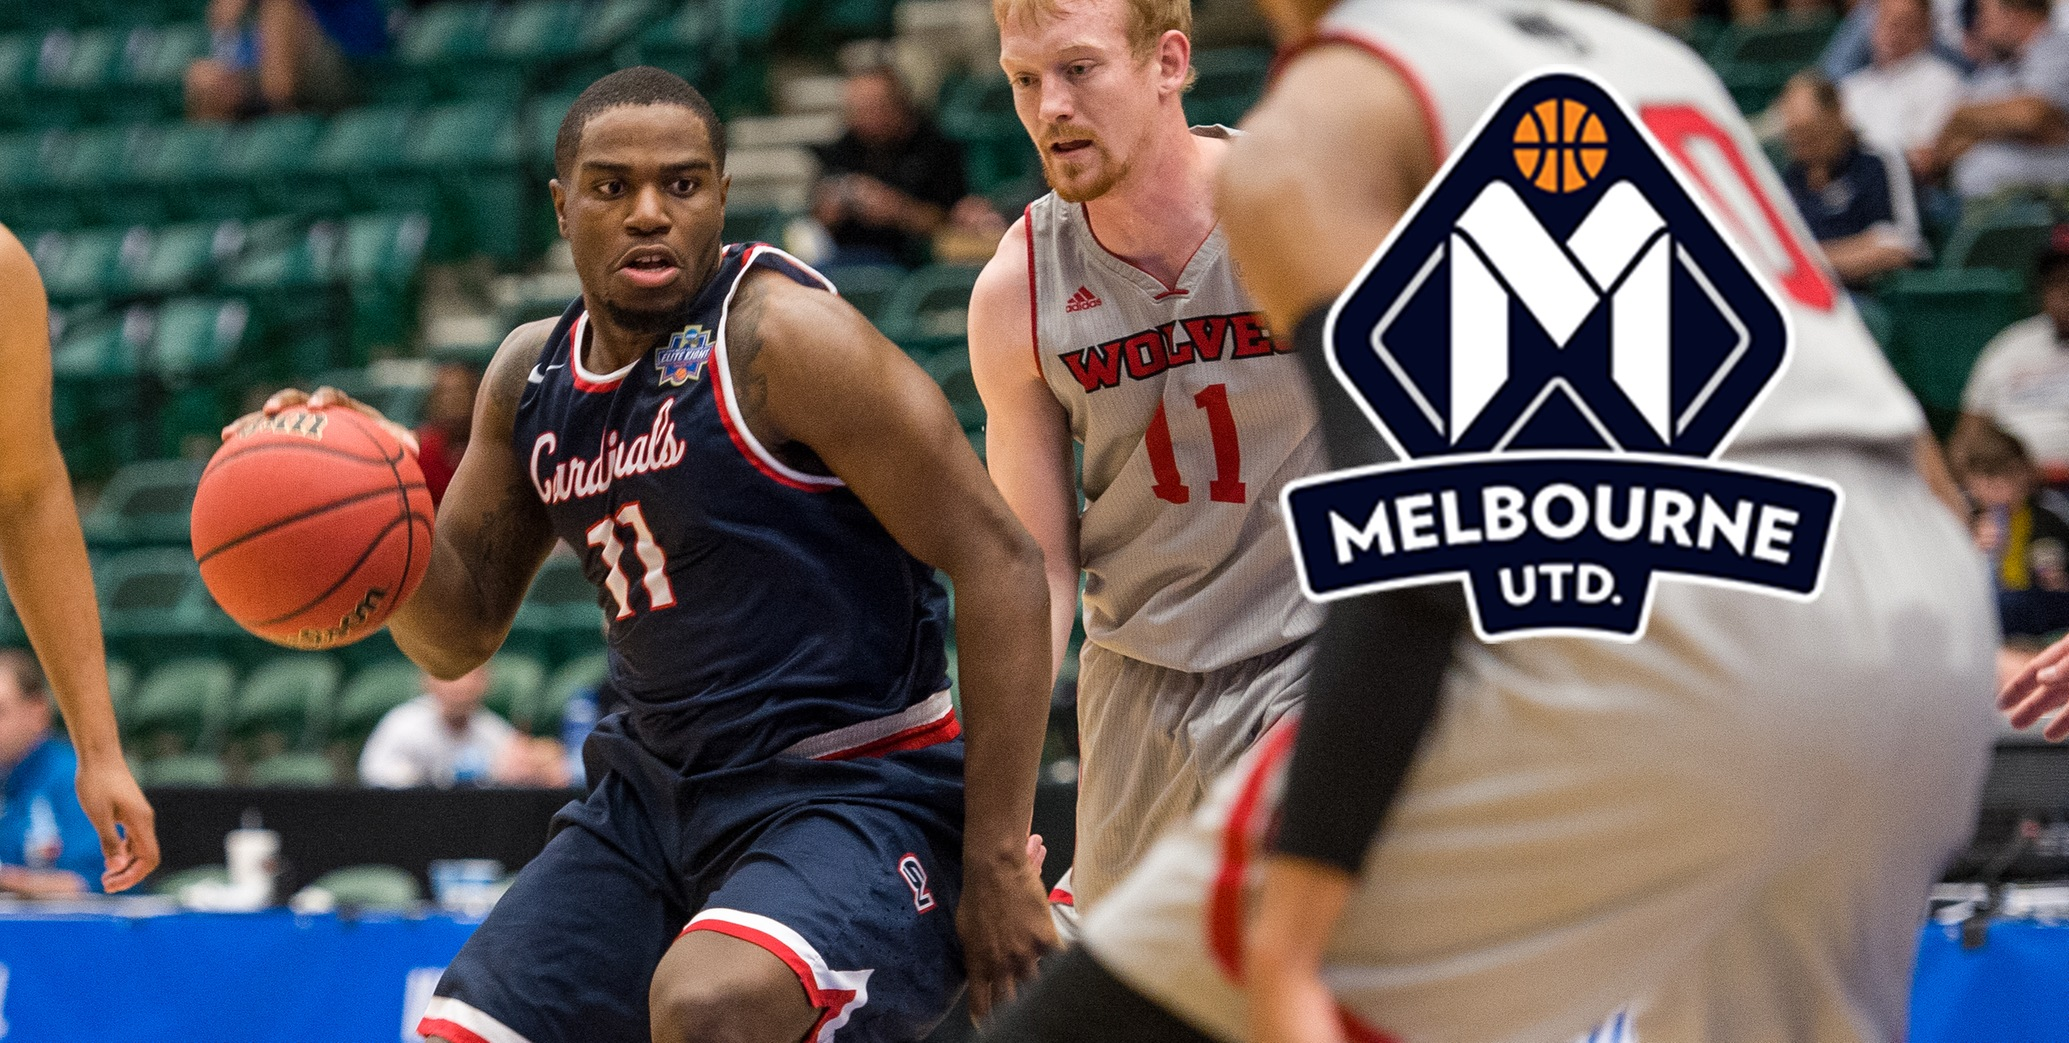 Damon Bozeman invited to play for NBL Team Melbourne United versus Team China